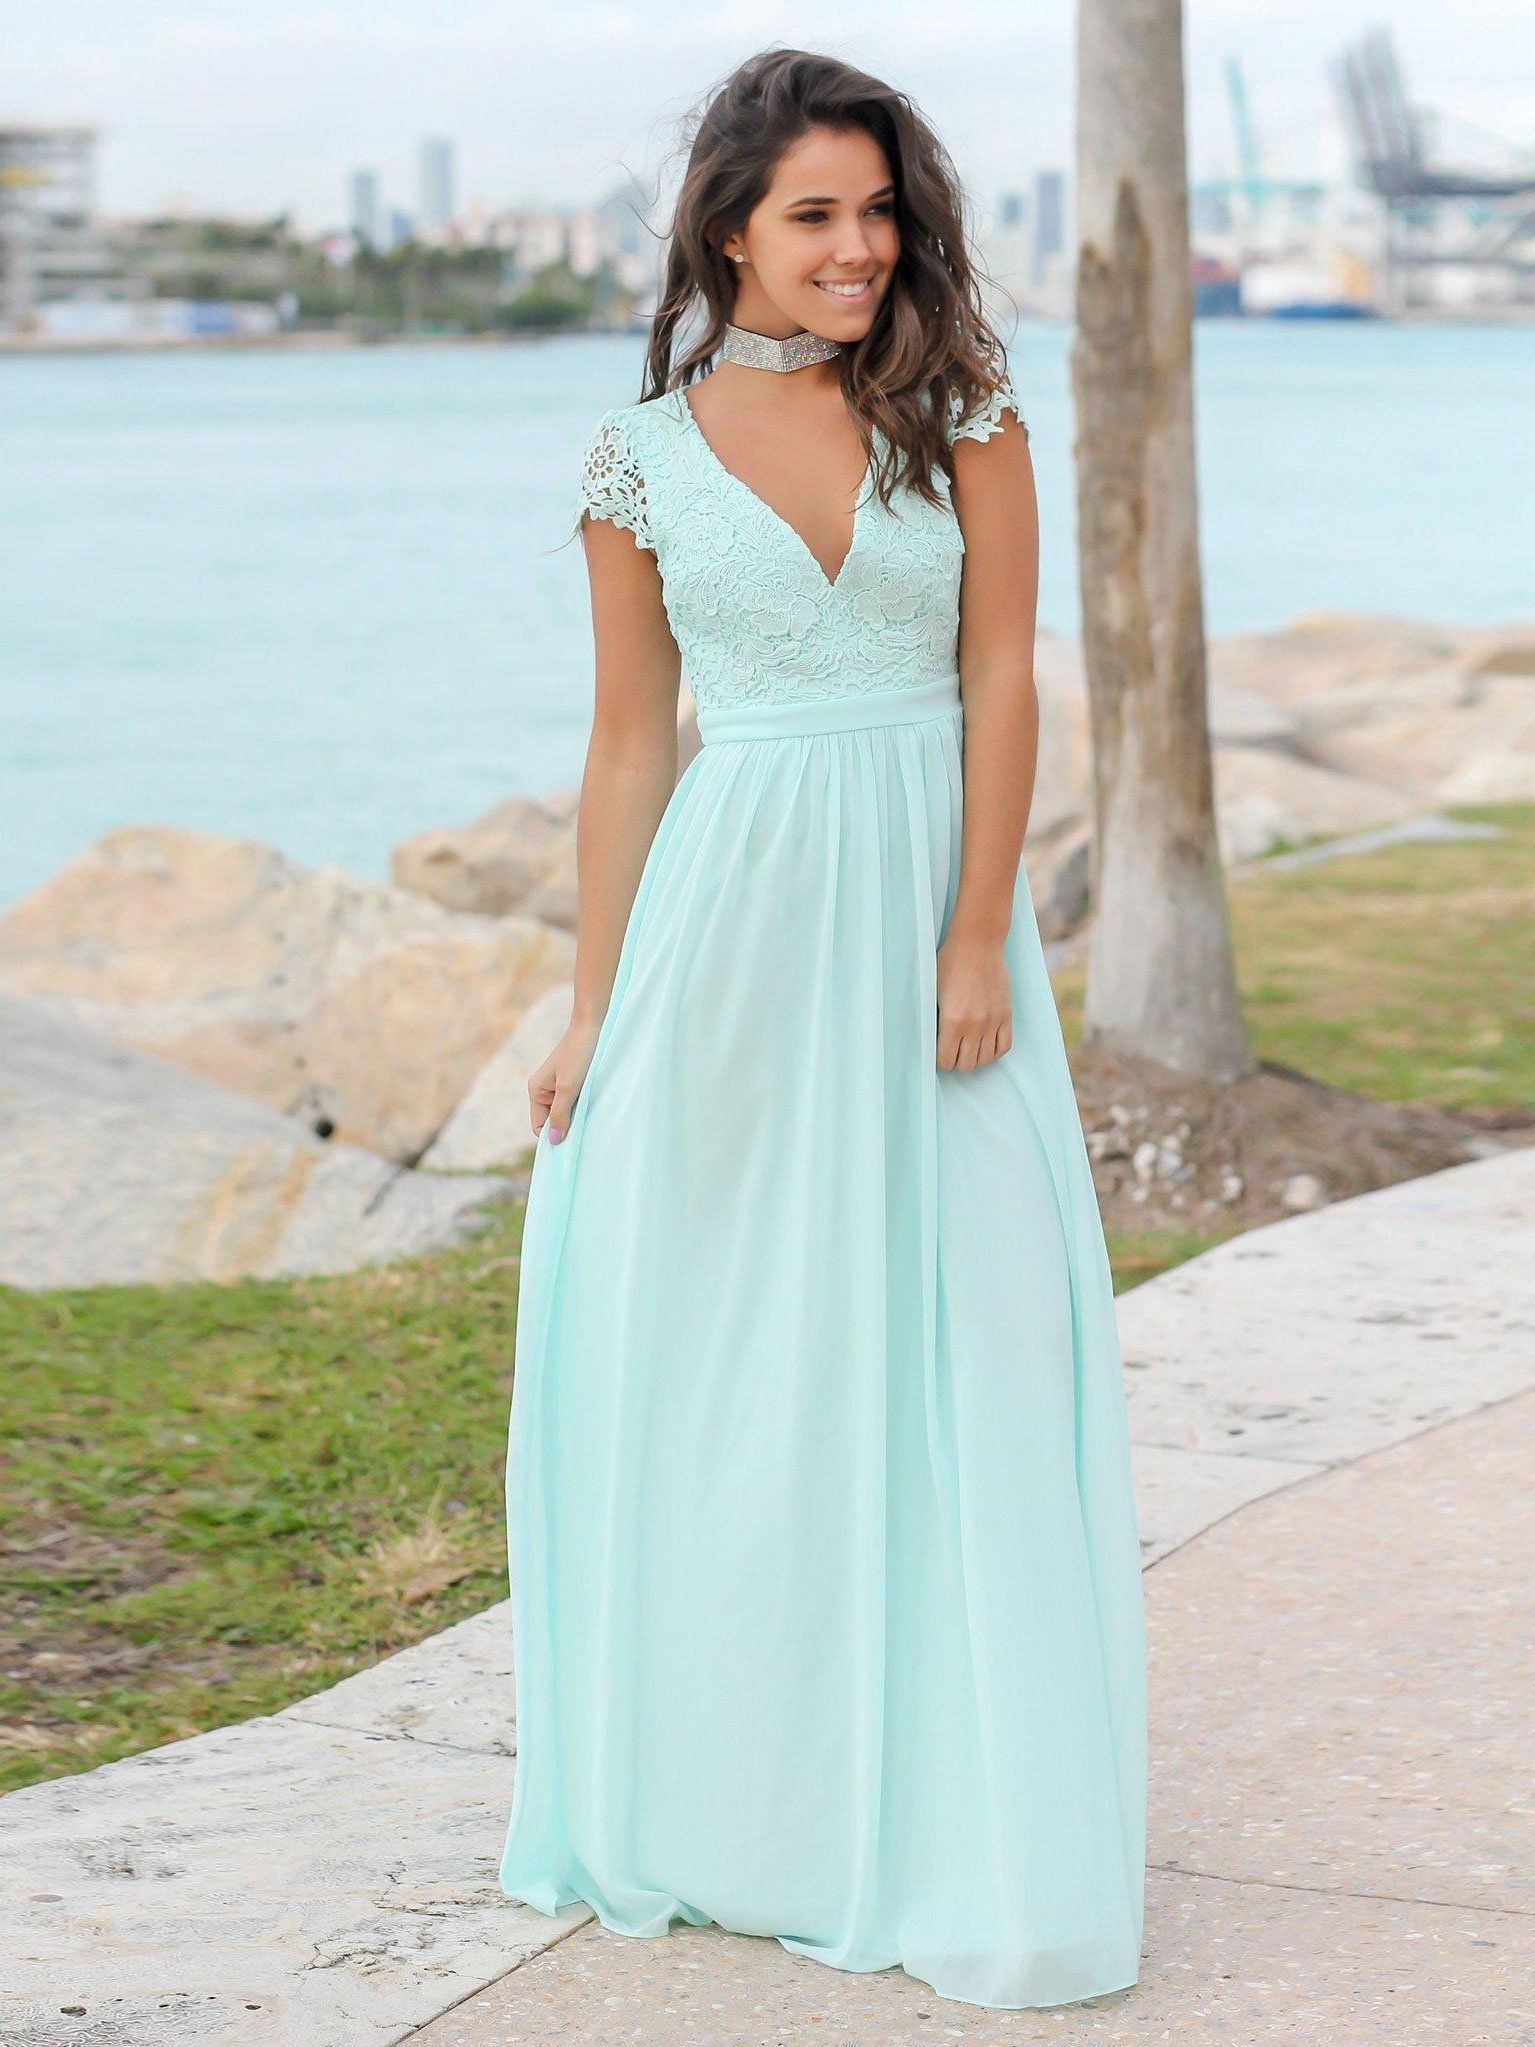 Light blue summer formal evening dresses v neck simple lace wedding